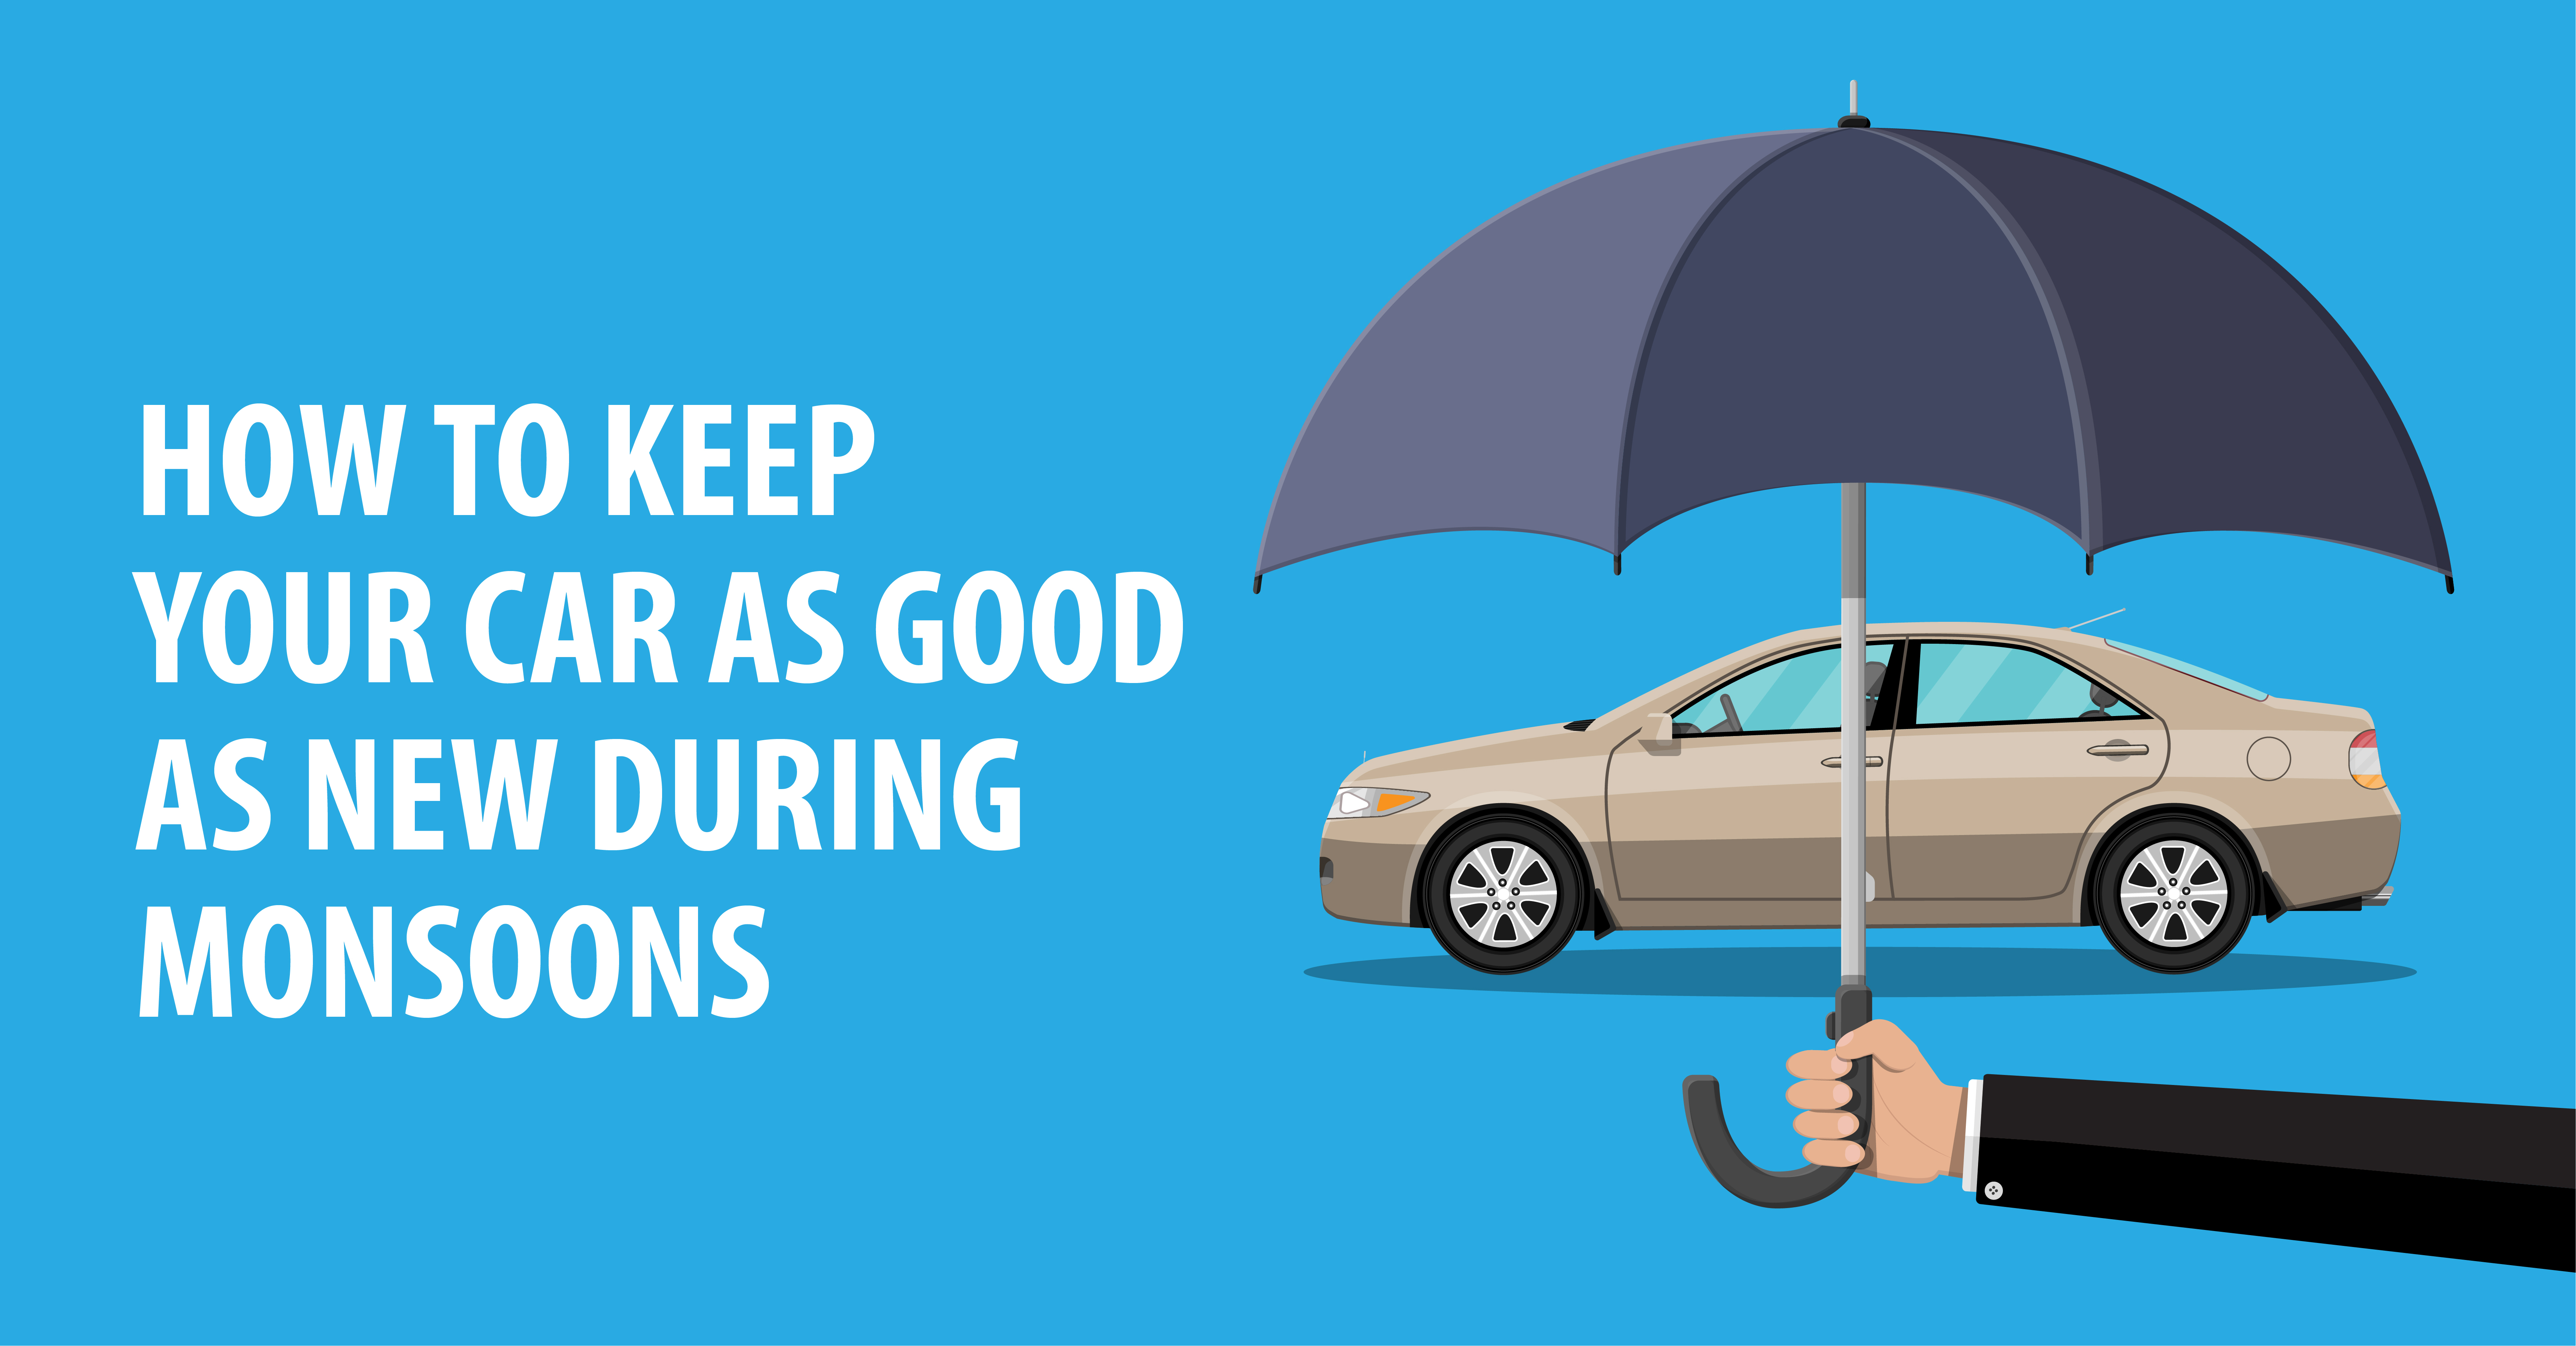 CAR CARE TIPS FOR THE MONSOON